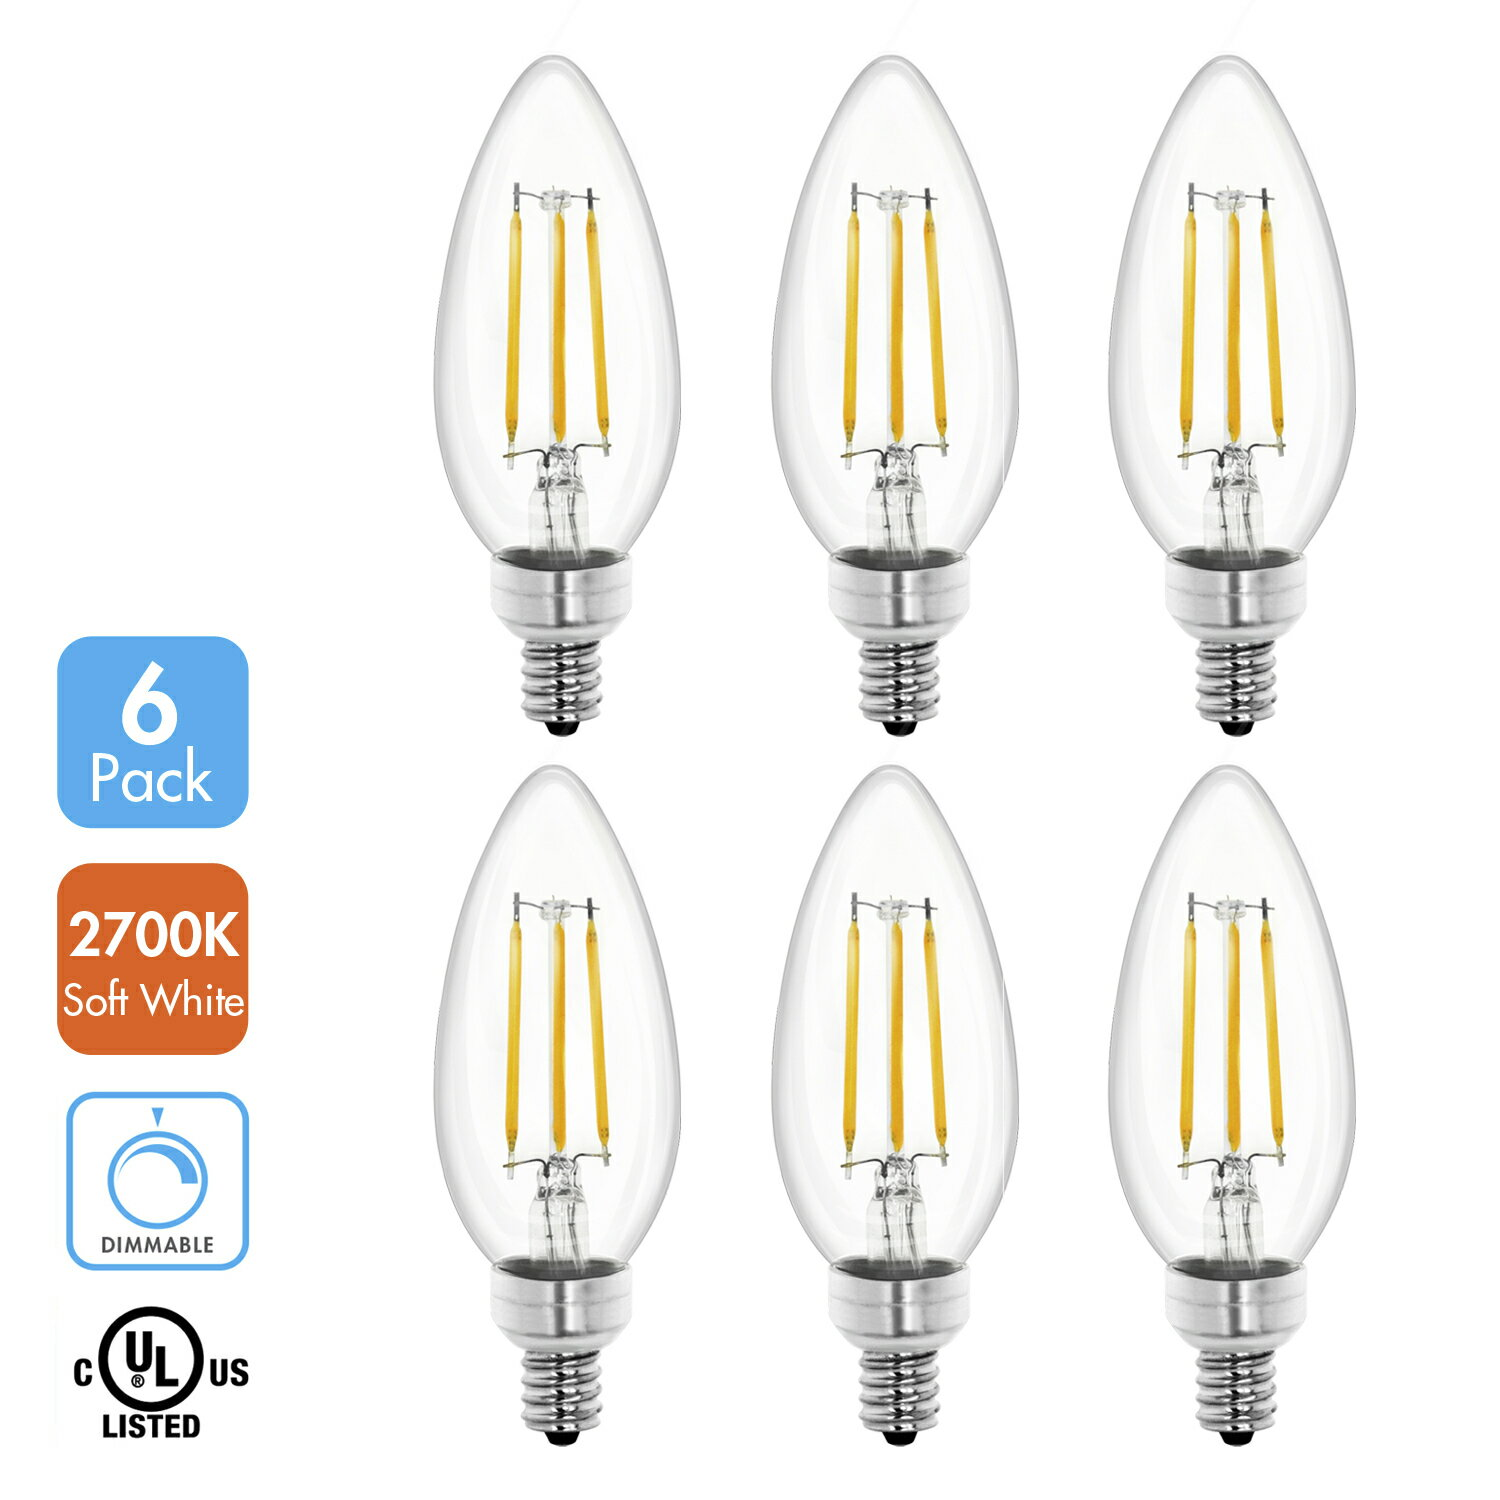 Tenergy Dimmable Candelabra Led Bulbs 4w 40 Watt Equivalent E12 400lm Warm White 2700k B11 Chandelier Light Ceiling Fan